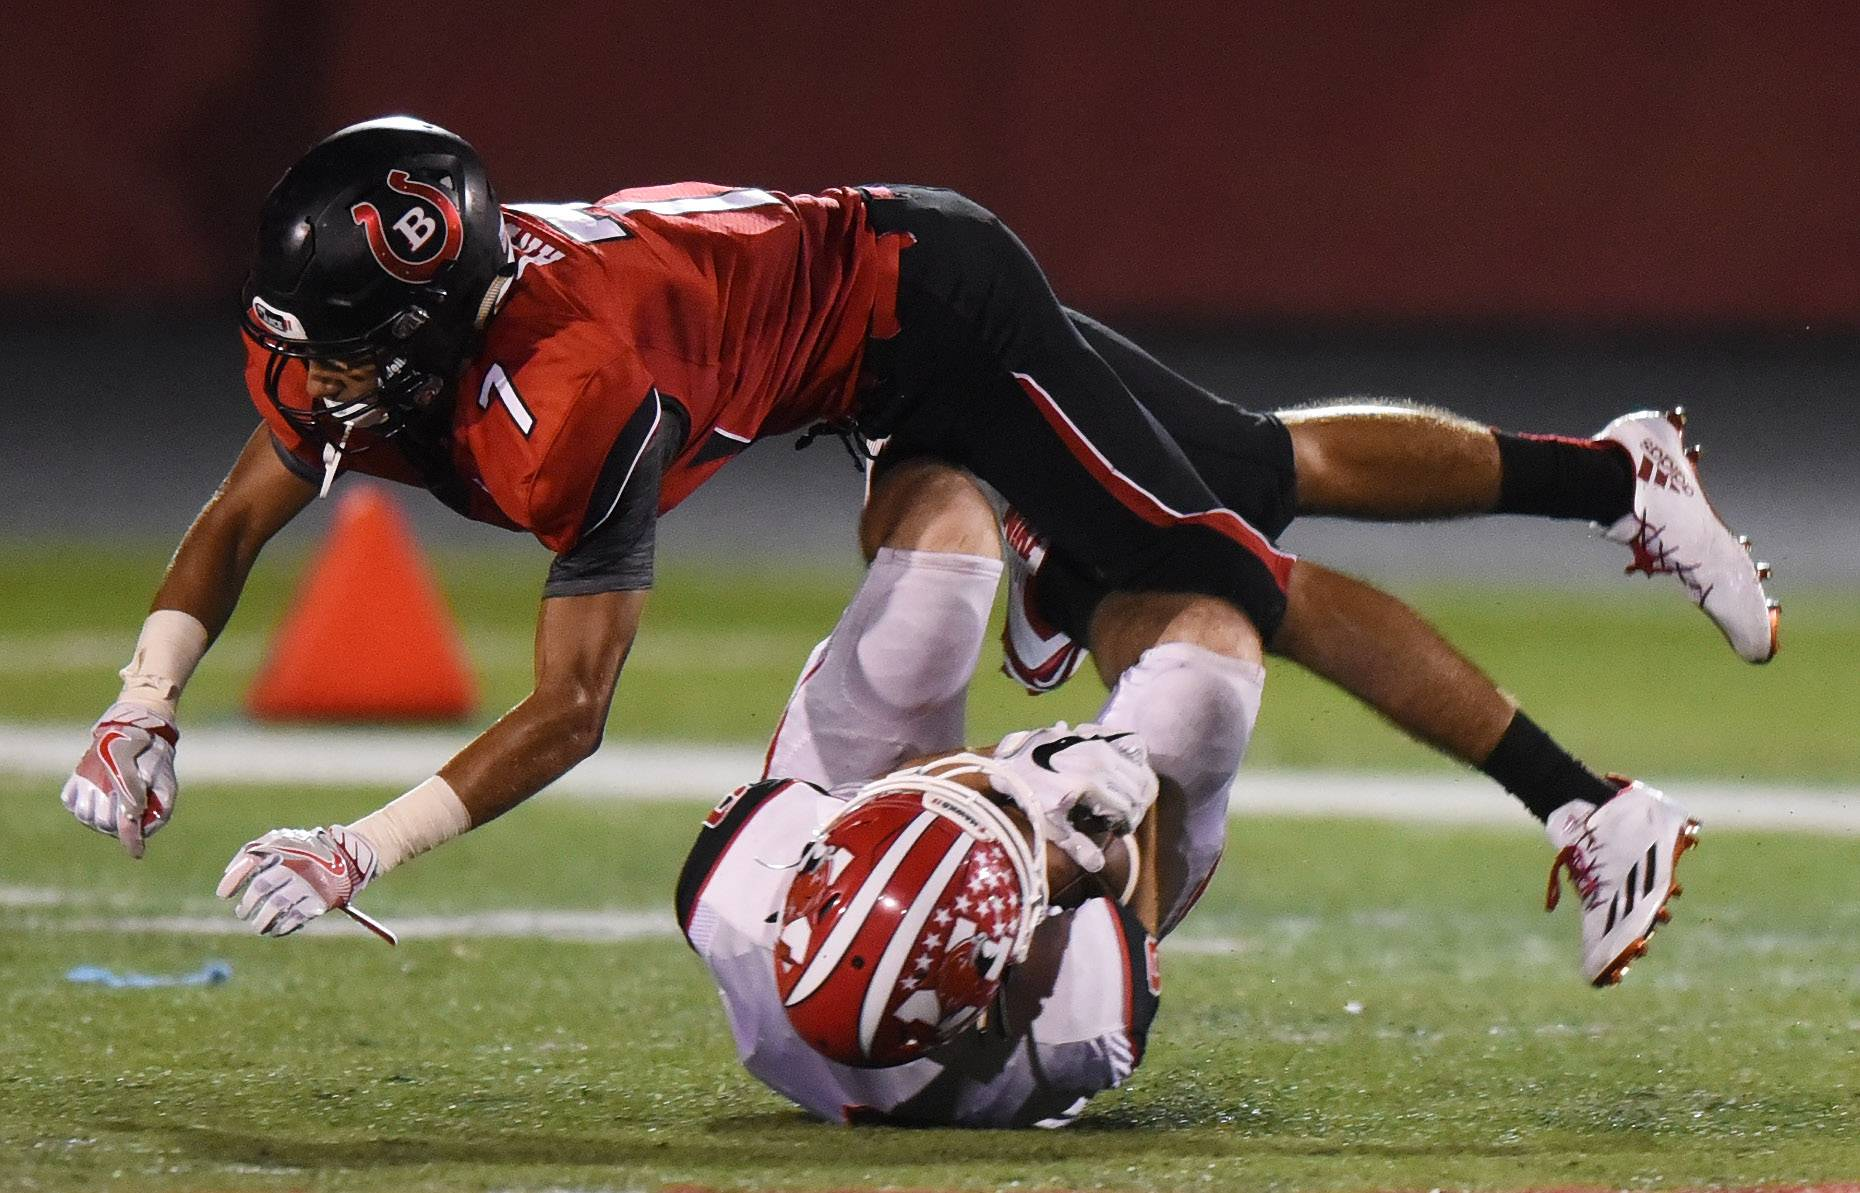 Barrington's Alec Andrea dives over Luke Hinkamp after a catch by the Maine South wide receiver during Friday's football game at Barrington.